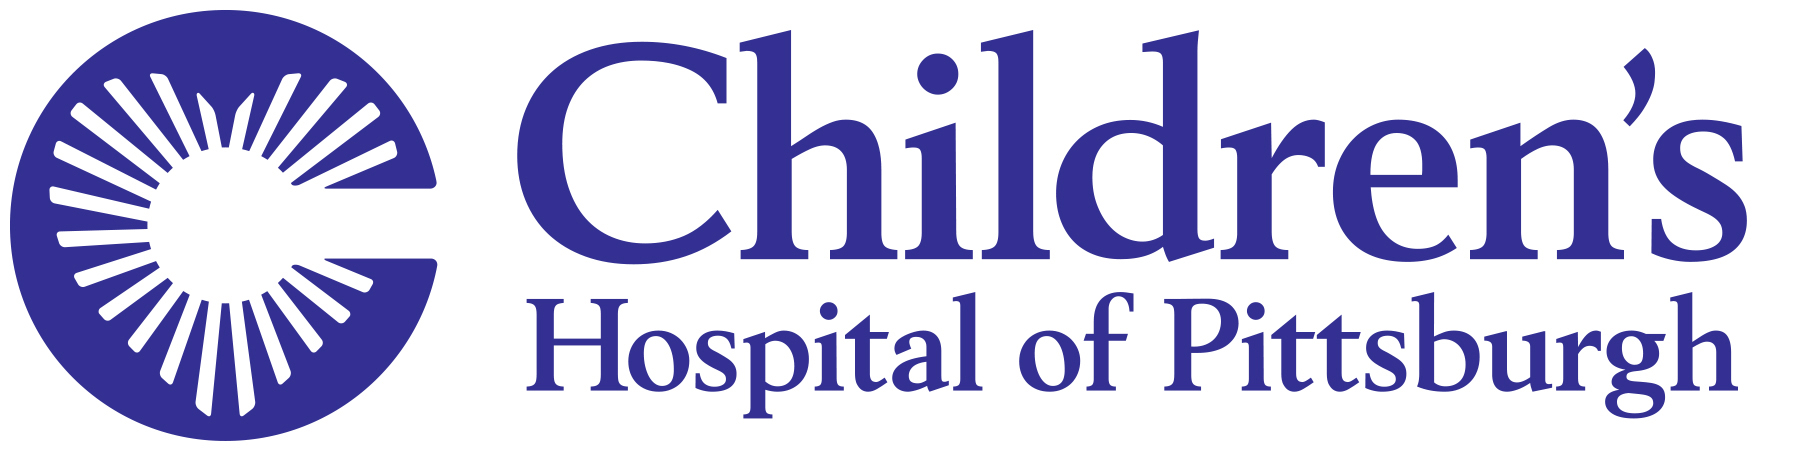 Children's Hospital of Pittsburgh